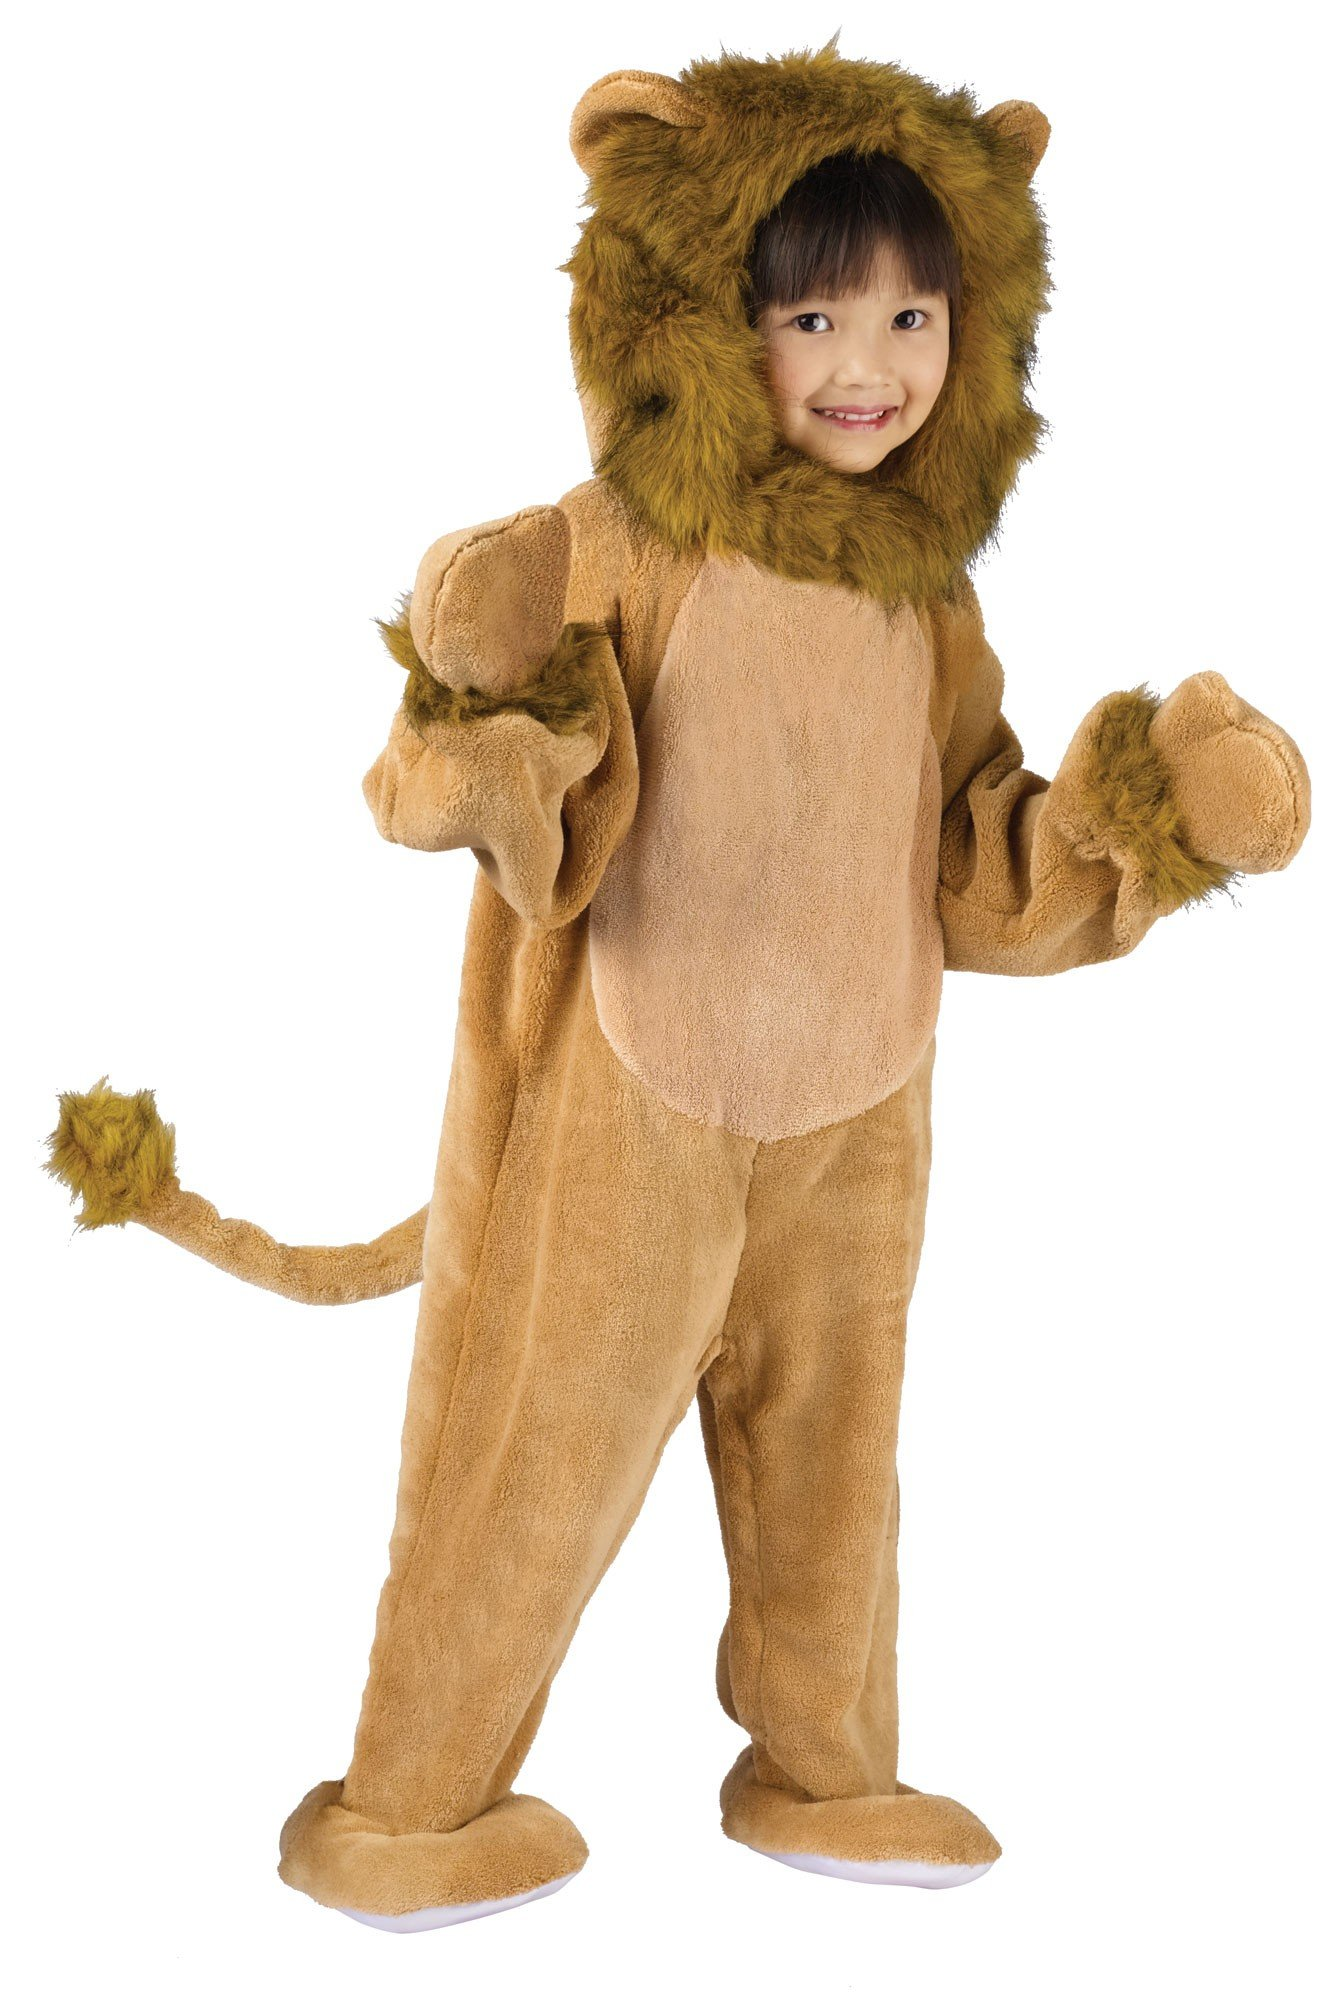 Fun World Costumes Baby's Cuddly Lion Toddler Costume, Tan, Toddler Large 3T-4T